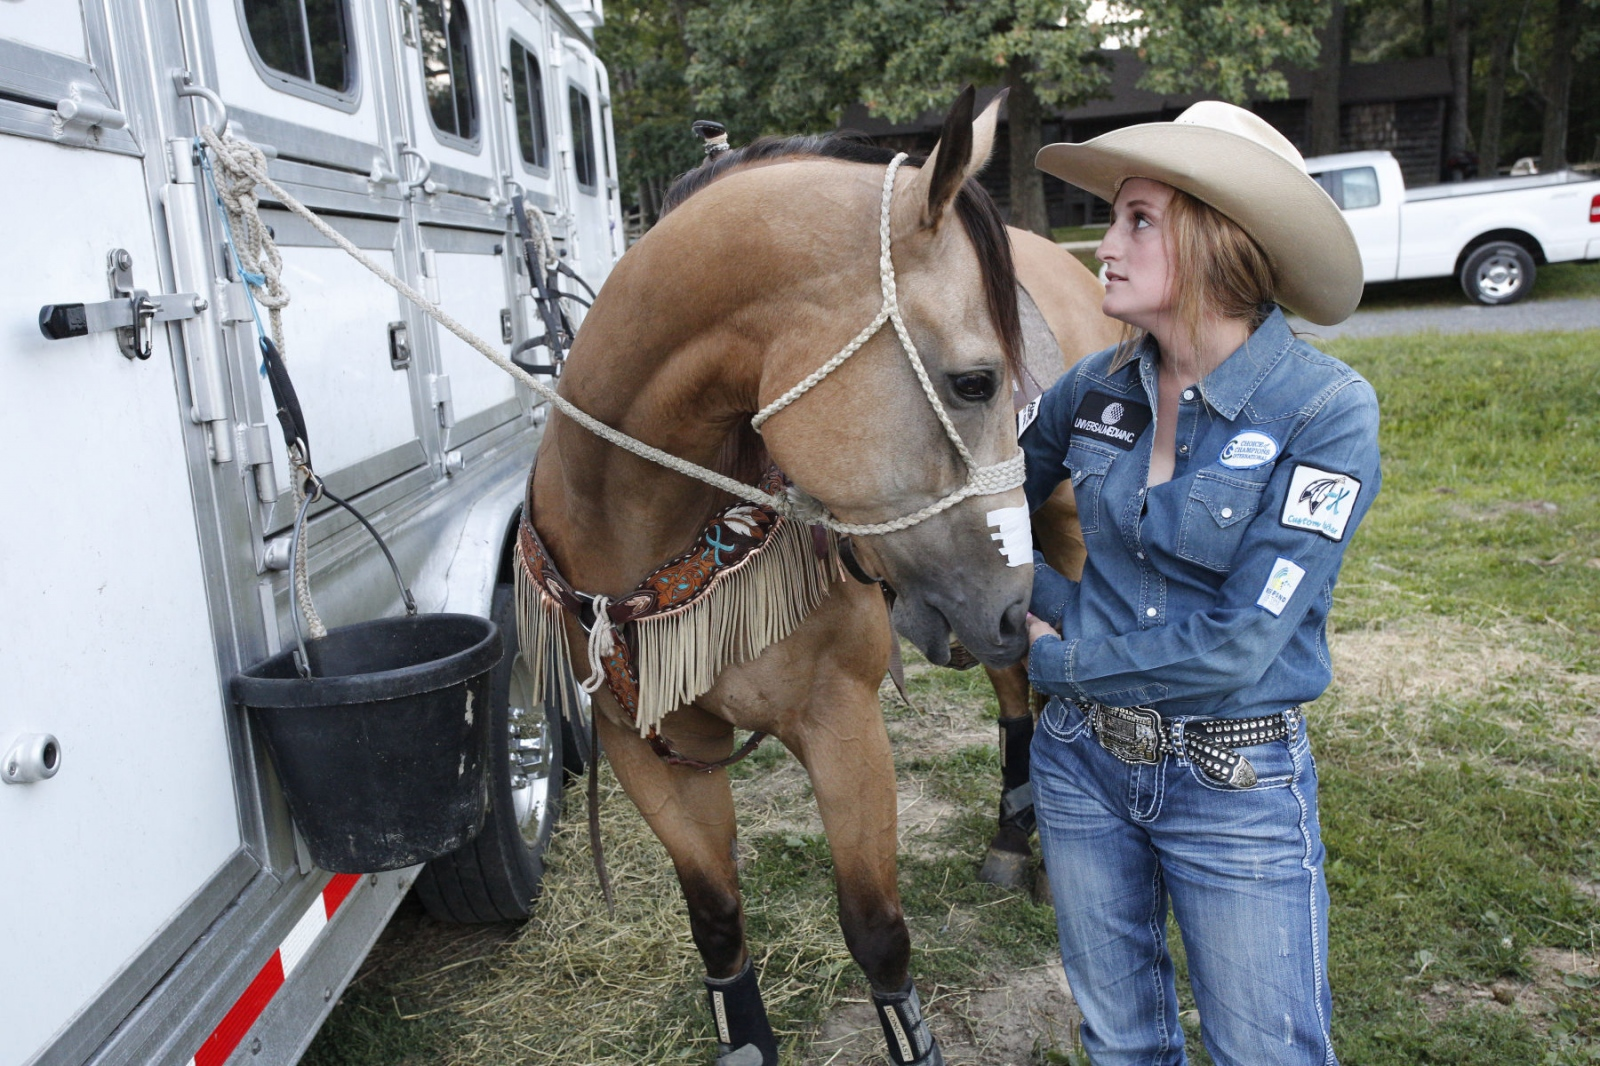 Tsunami nudges Taylor Young while she is listening to the announcer about a young male bull rider who was severely injured at Malibu Rodeo in Milford, Pennsylvania.(Kevin C. Downs/Agence Cosmos)